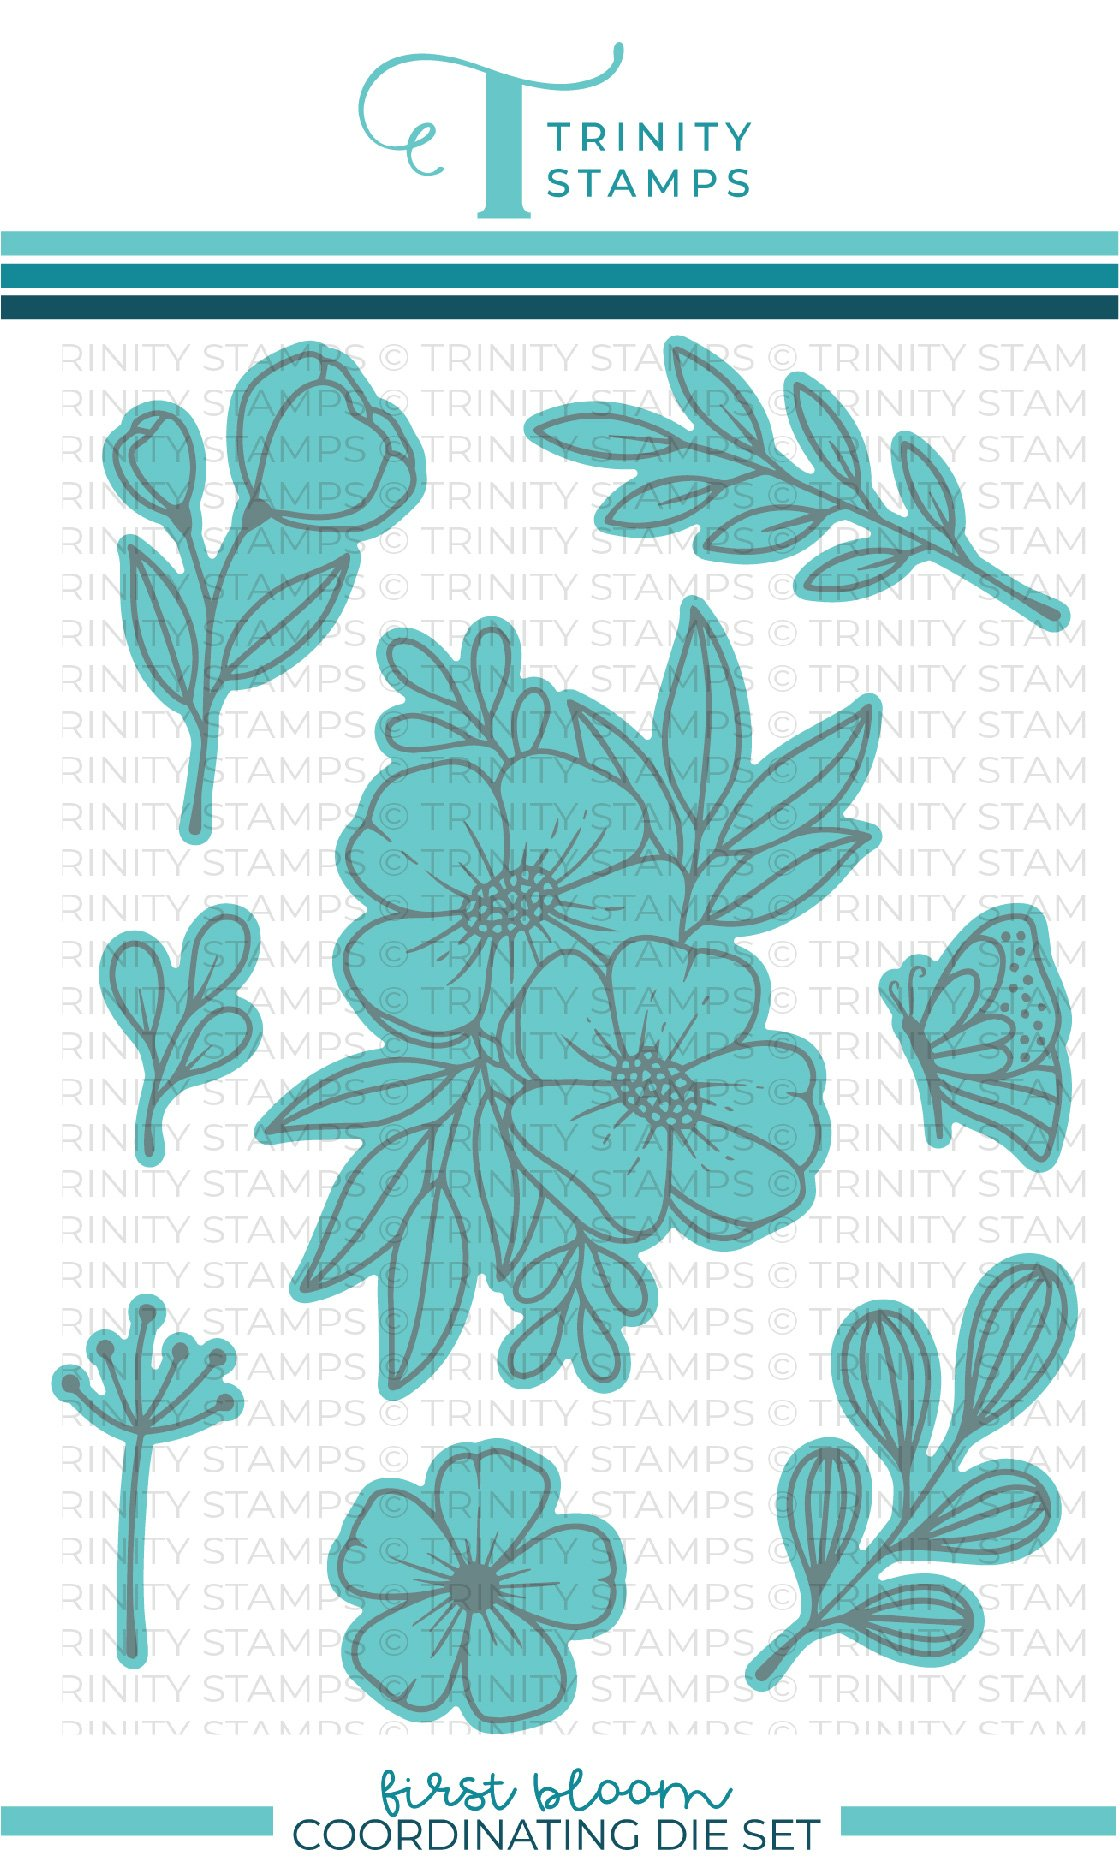 *NEW* - Trinity Stamps - First Bloom Coordinating Die Set